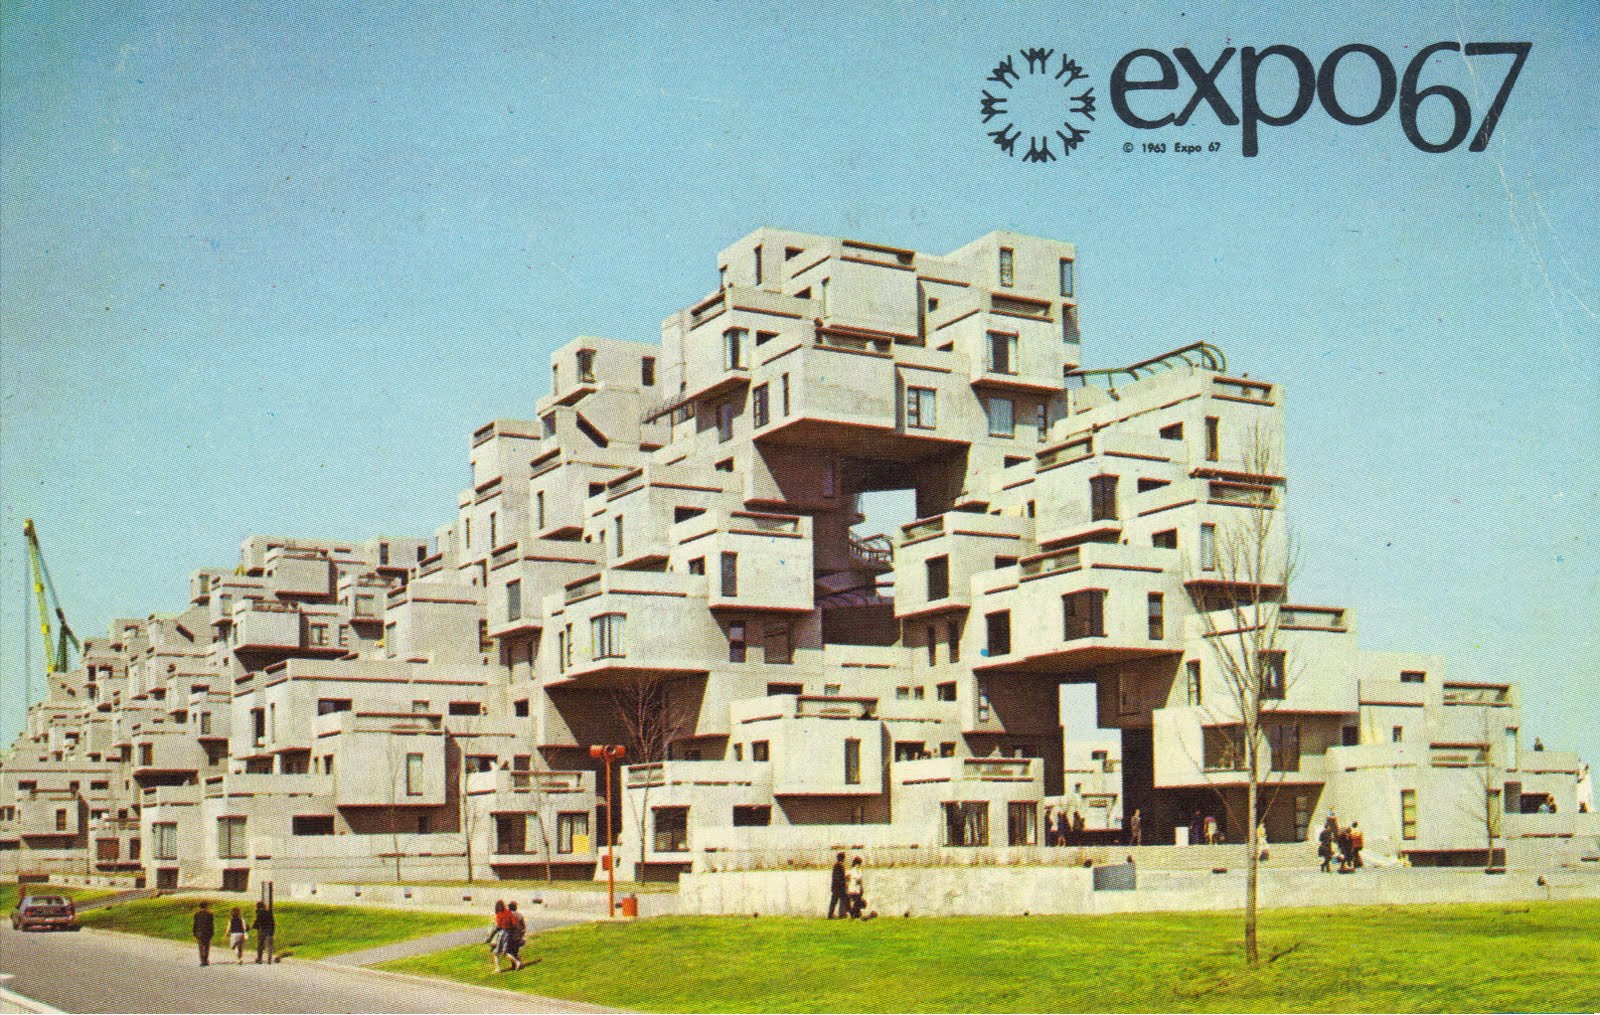 Postales inventadas making up postcards 535 expo 67 for Habitat 67 architecture